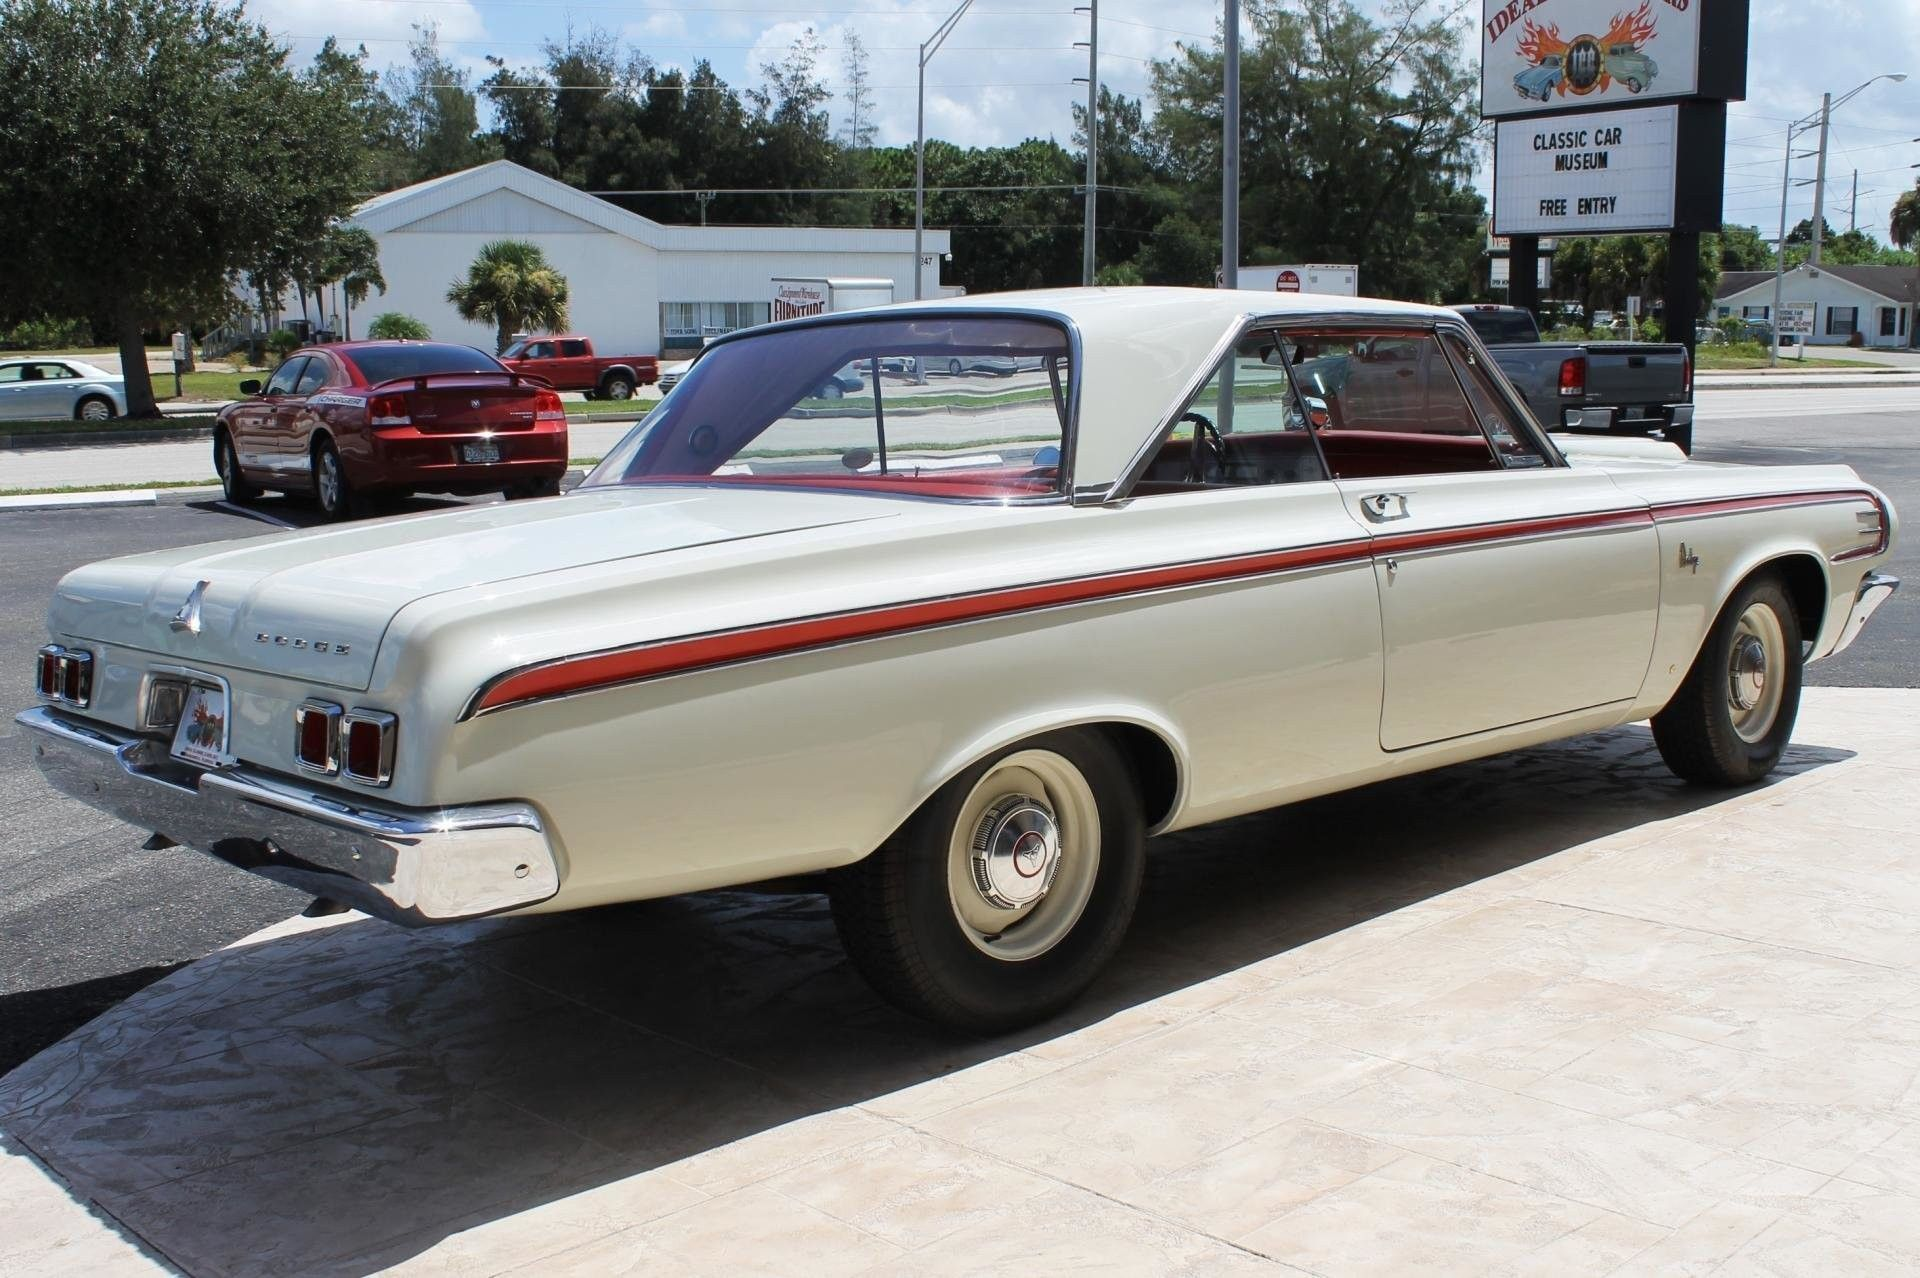 1964 Dodge 440 Max Wedge 426 in 2020 Mopar muscle cars